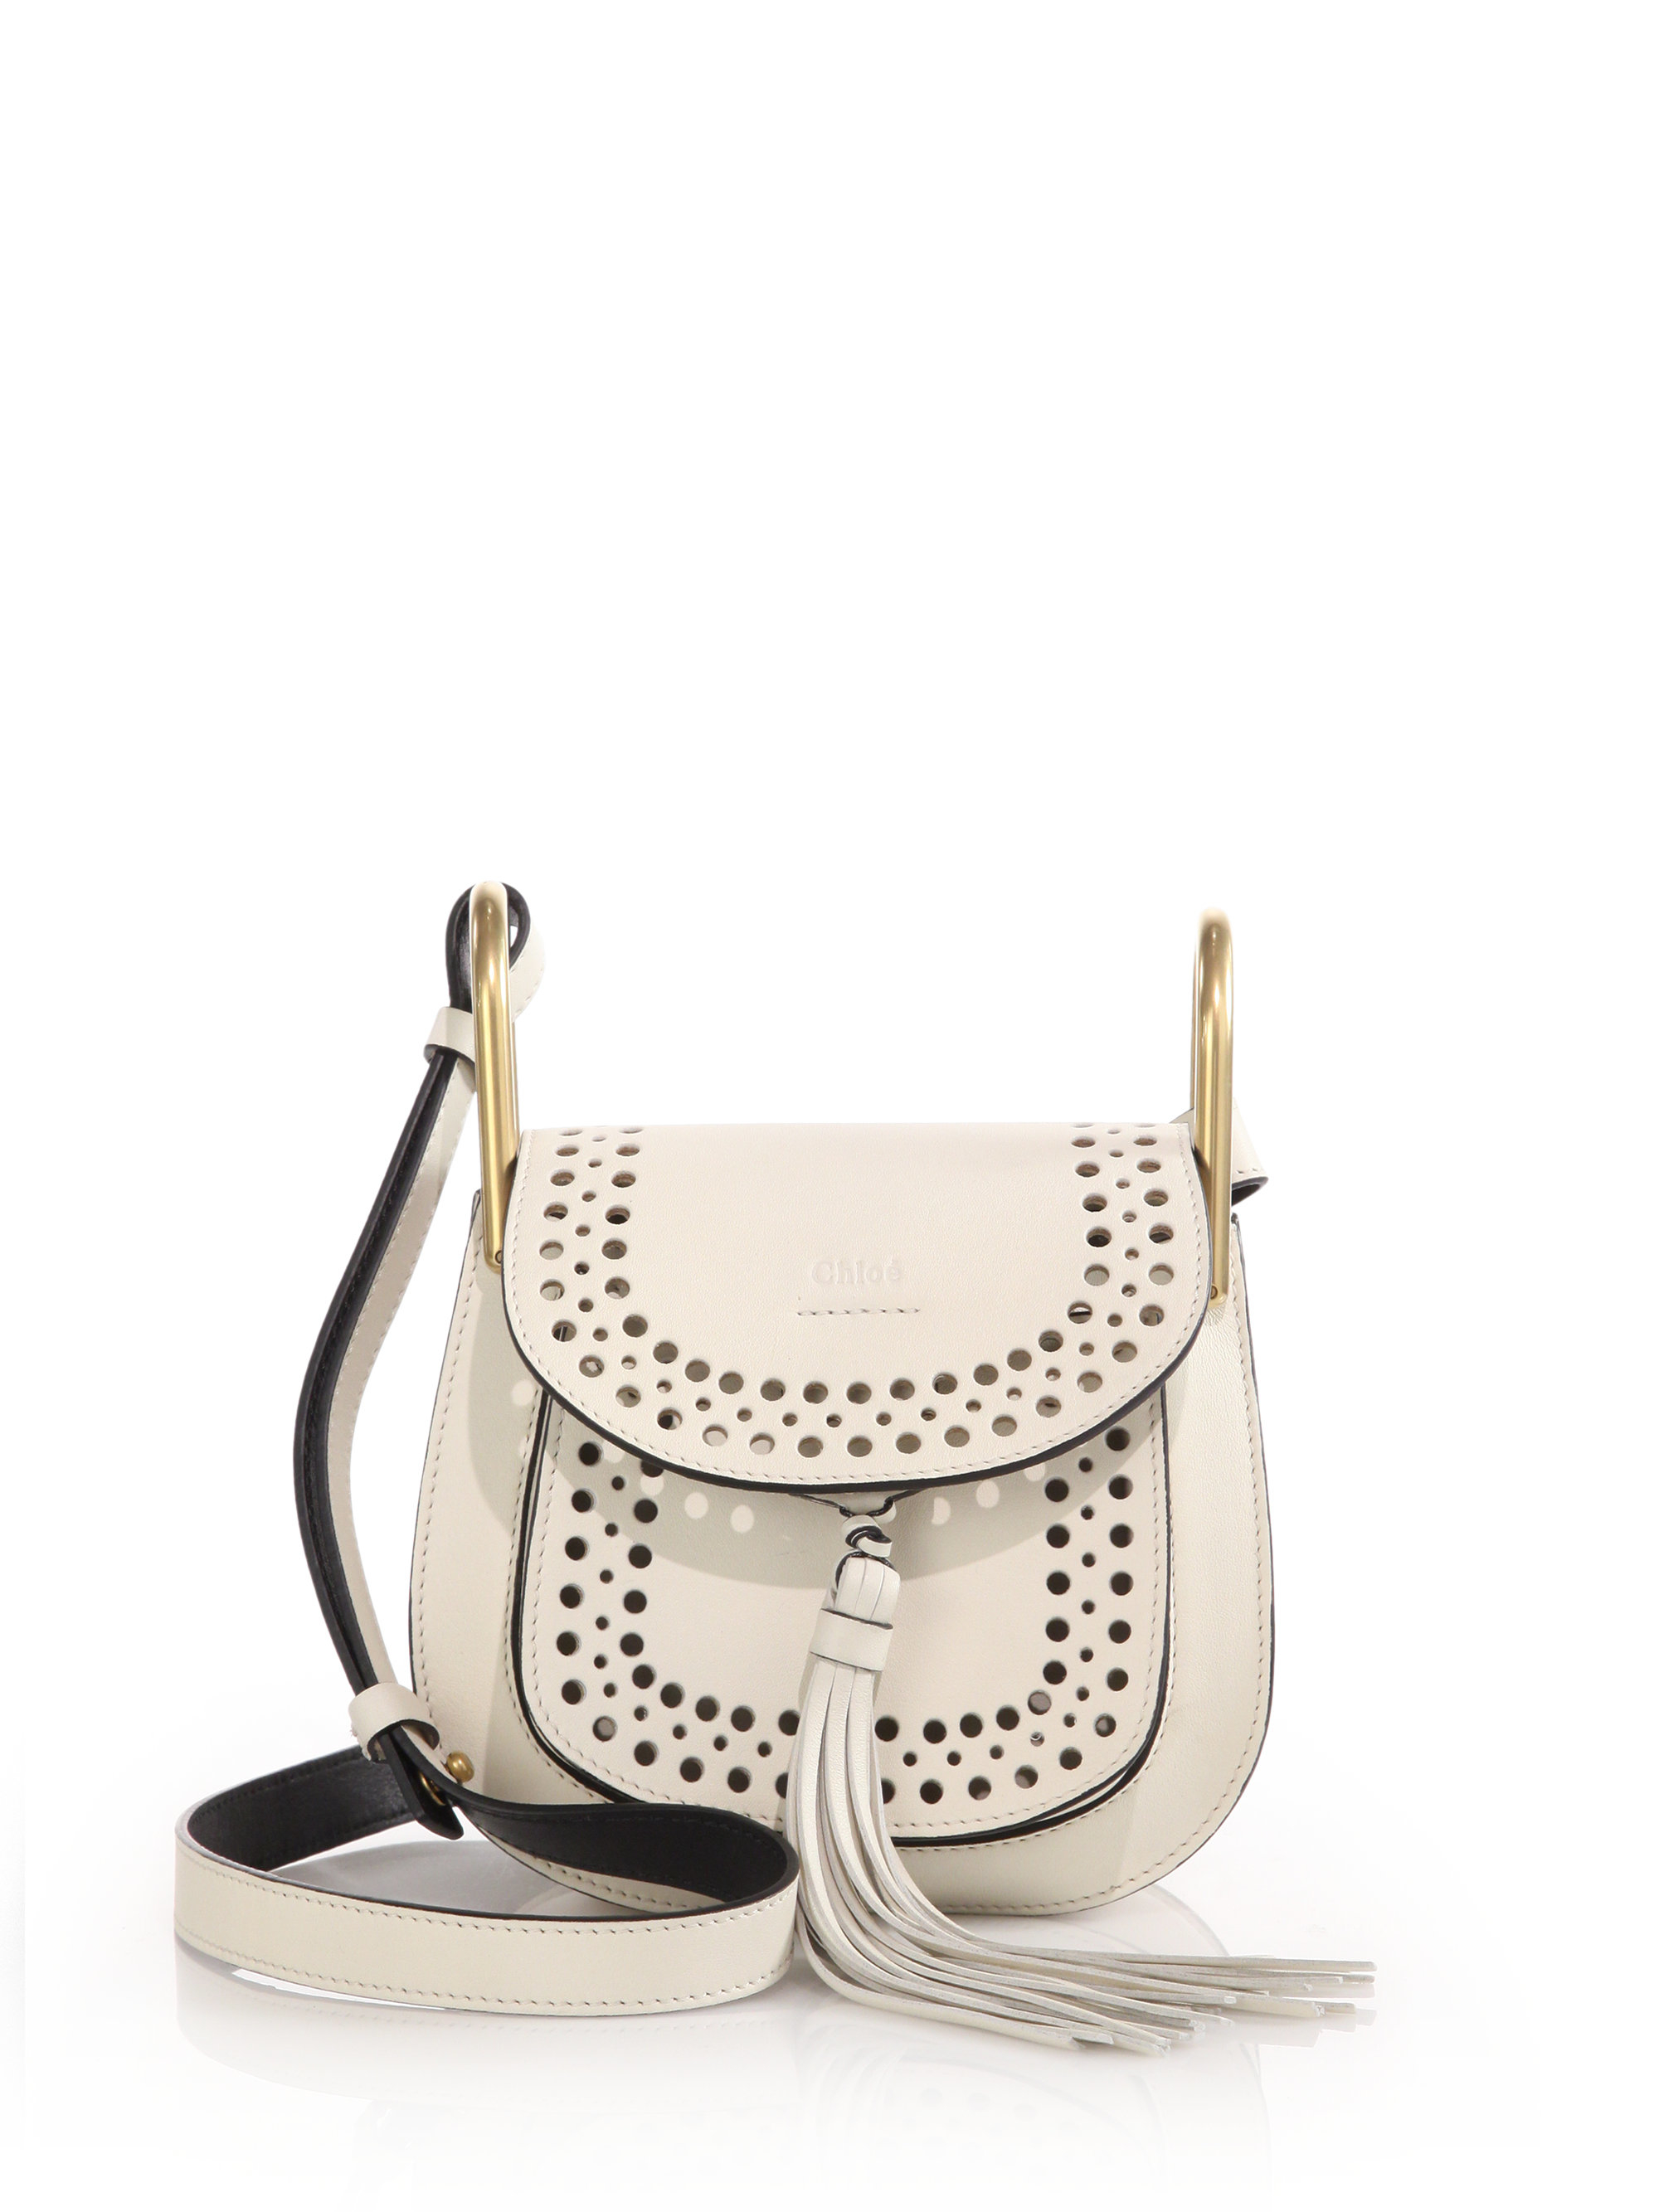 chleo bags - Chlo�� Hudson Perforated Leather Mini Saddle Bag in White - Save 30 ...